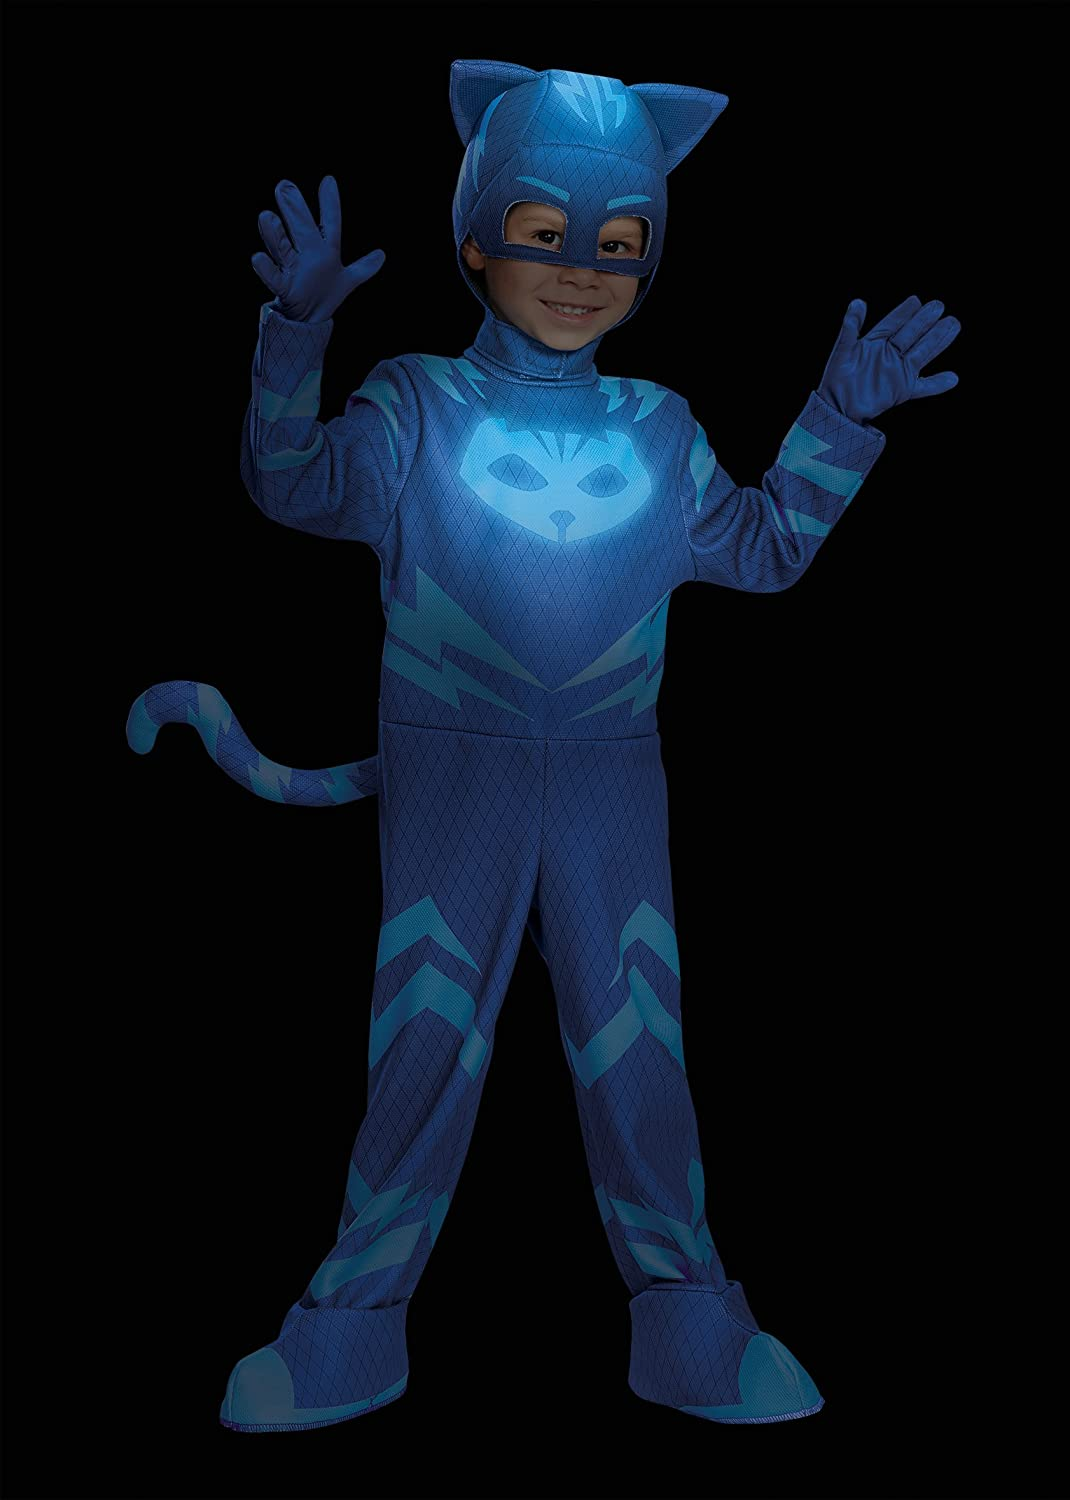 Disguise Catboy Deluxe Toddler PJ Masks Costume, Medium/3T-4T by Disguise: Amazon.es: Juguetes y juegos